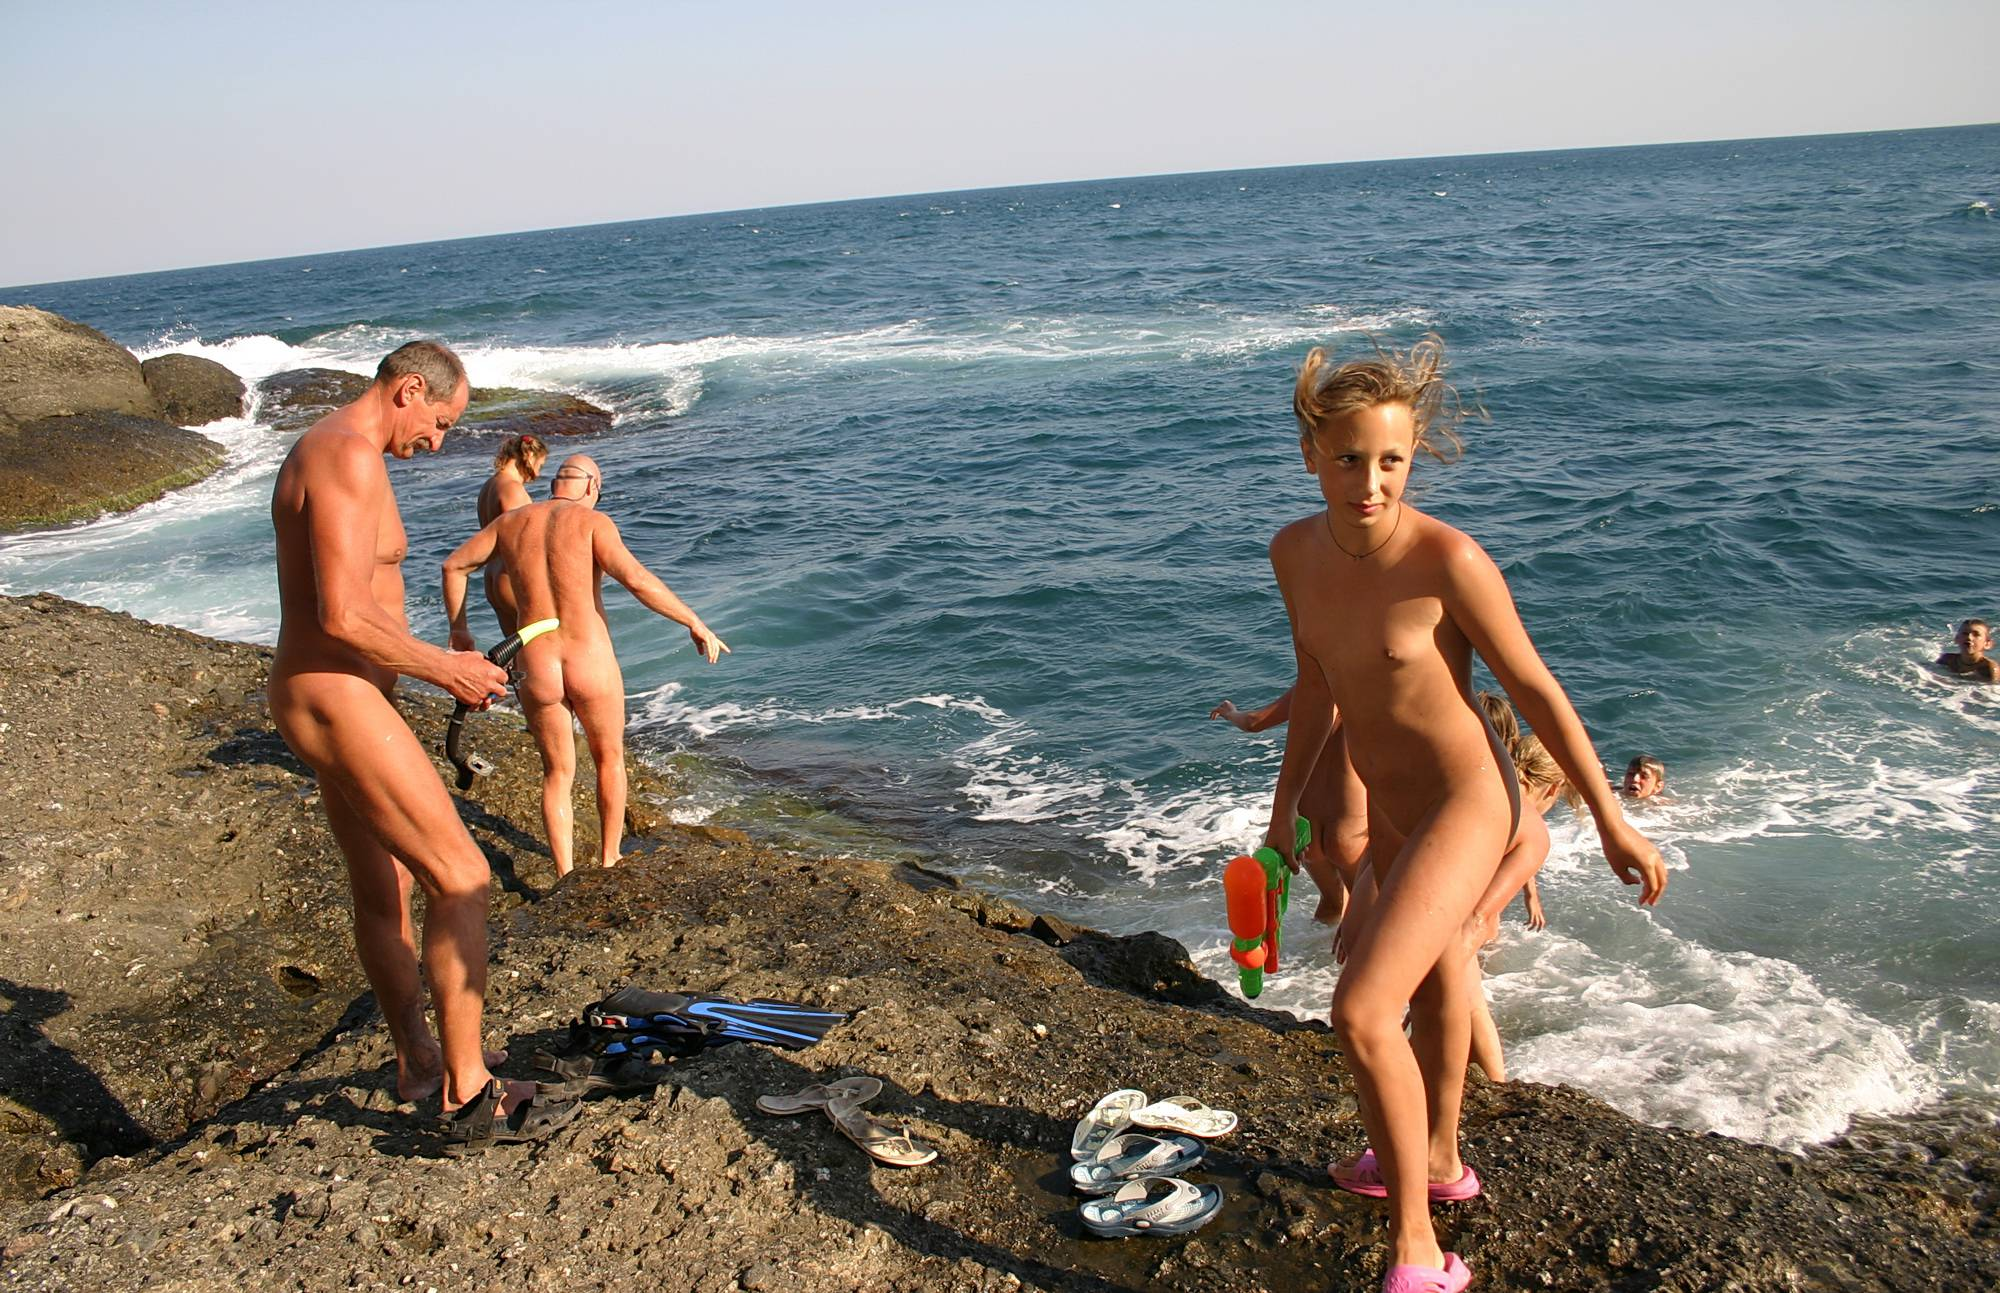 Pure Nudism Pics-Swim By The Rocky Shore - 3